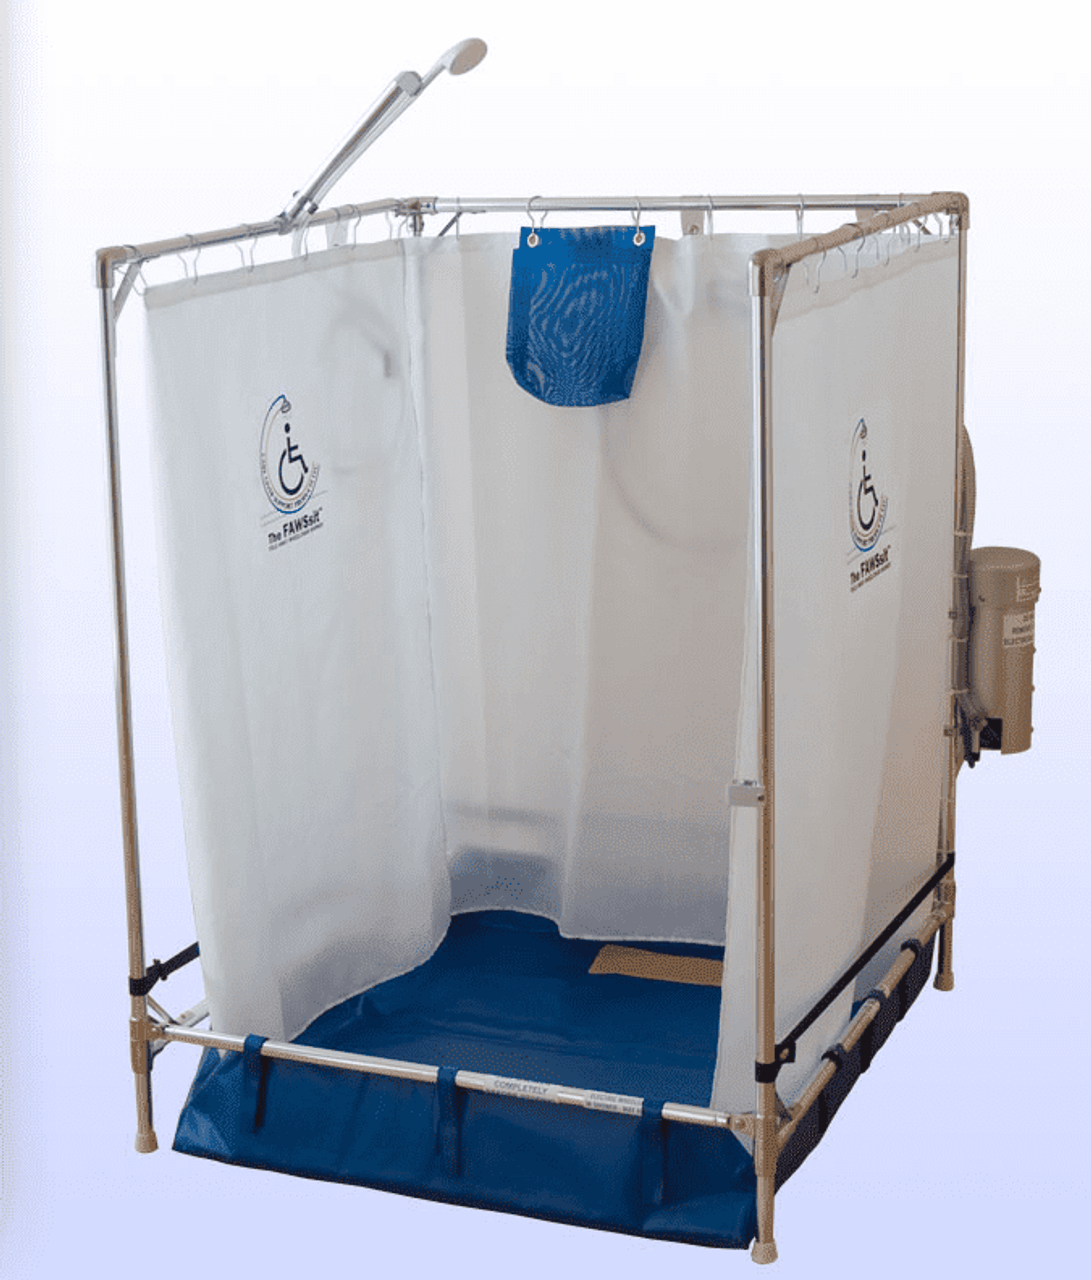 Portable Indoor Shower | FAWSsit S2000 | Rehab Shower